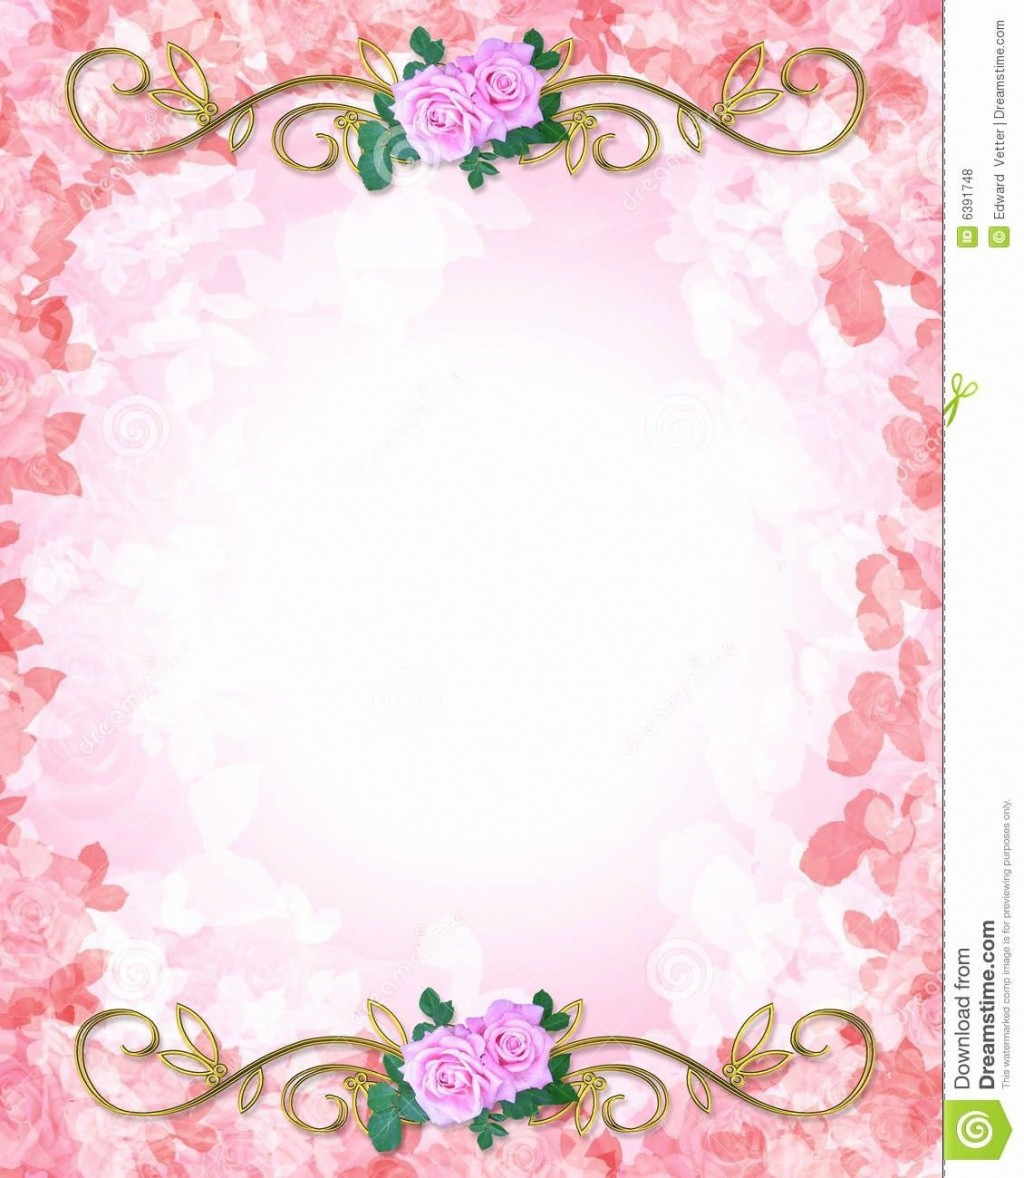 005 Fascinating Free Download Invitation Card Template Picture  Templates Indian Wedding Design Software PngLarge